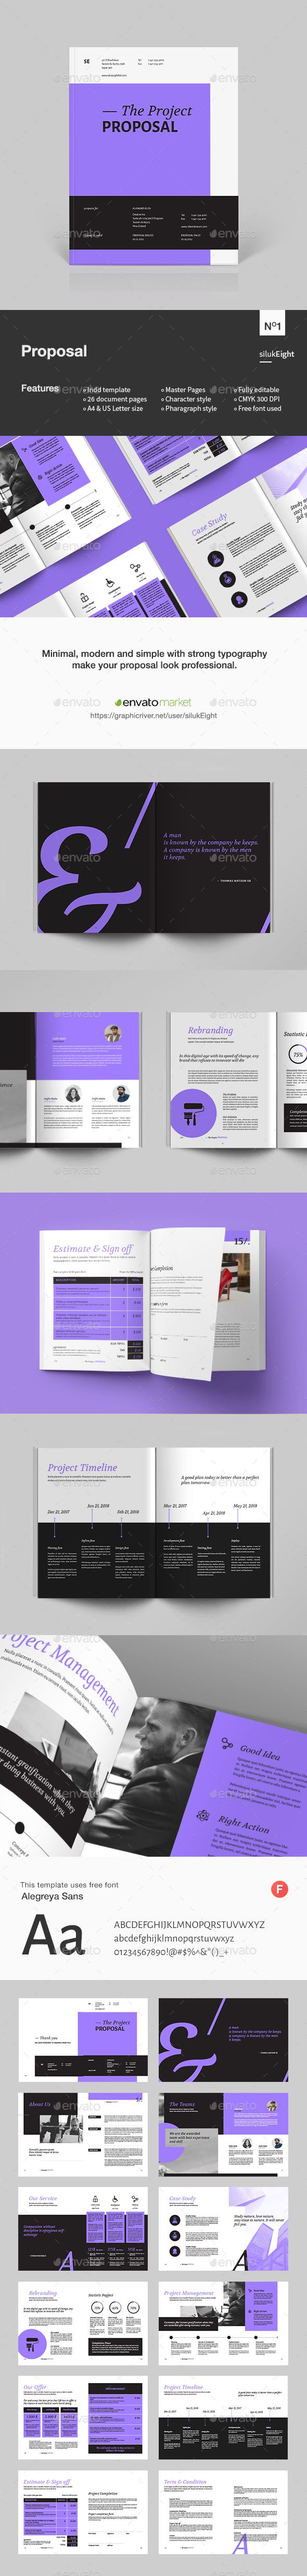 #Proposal - Proposals & #Invoices Stationery Download here: https://graphicriver.net/item/proposal/20009566?ref=alena994